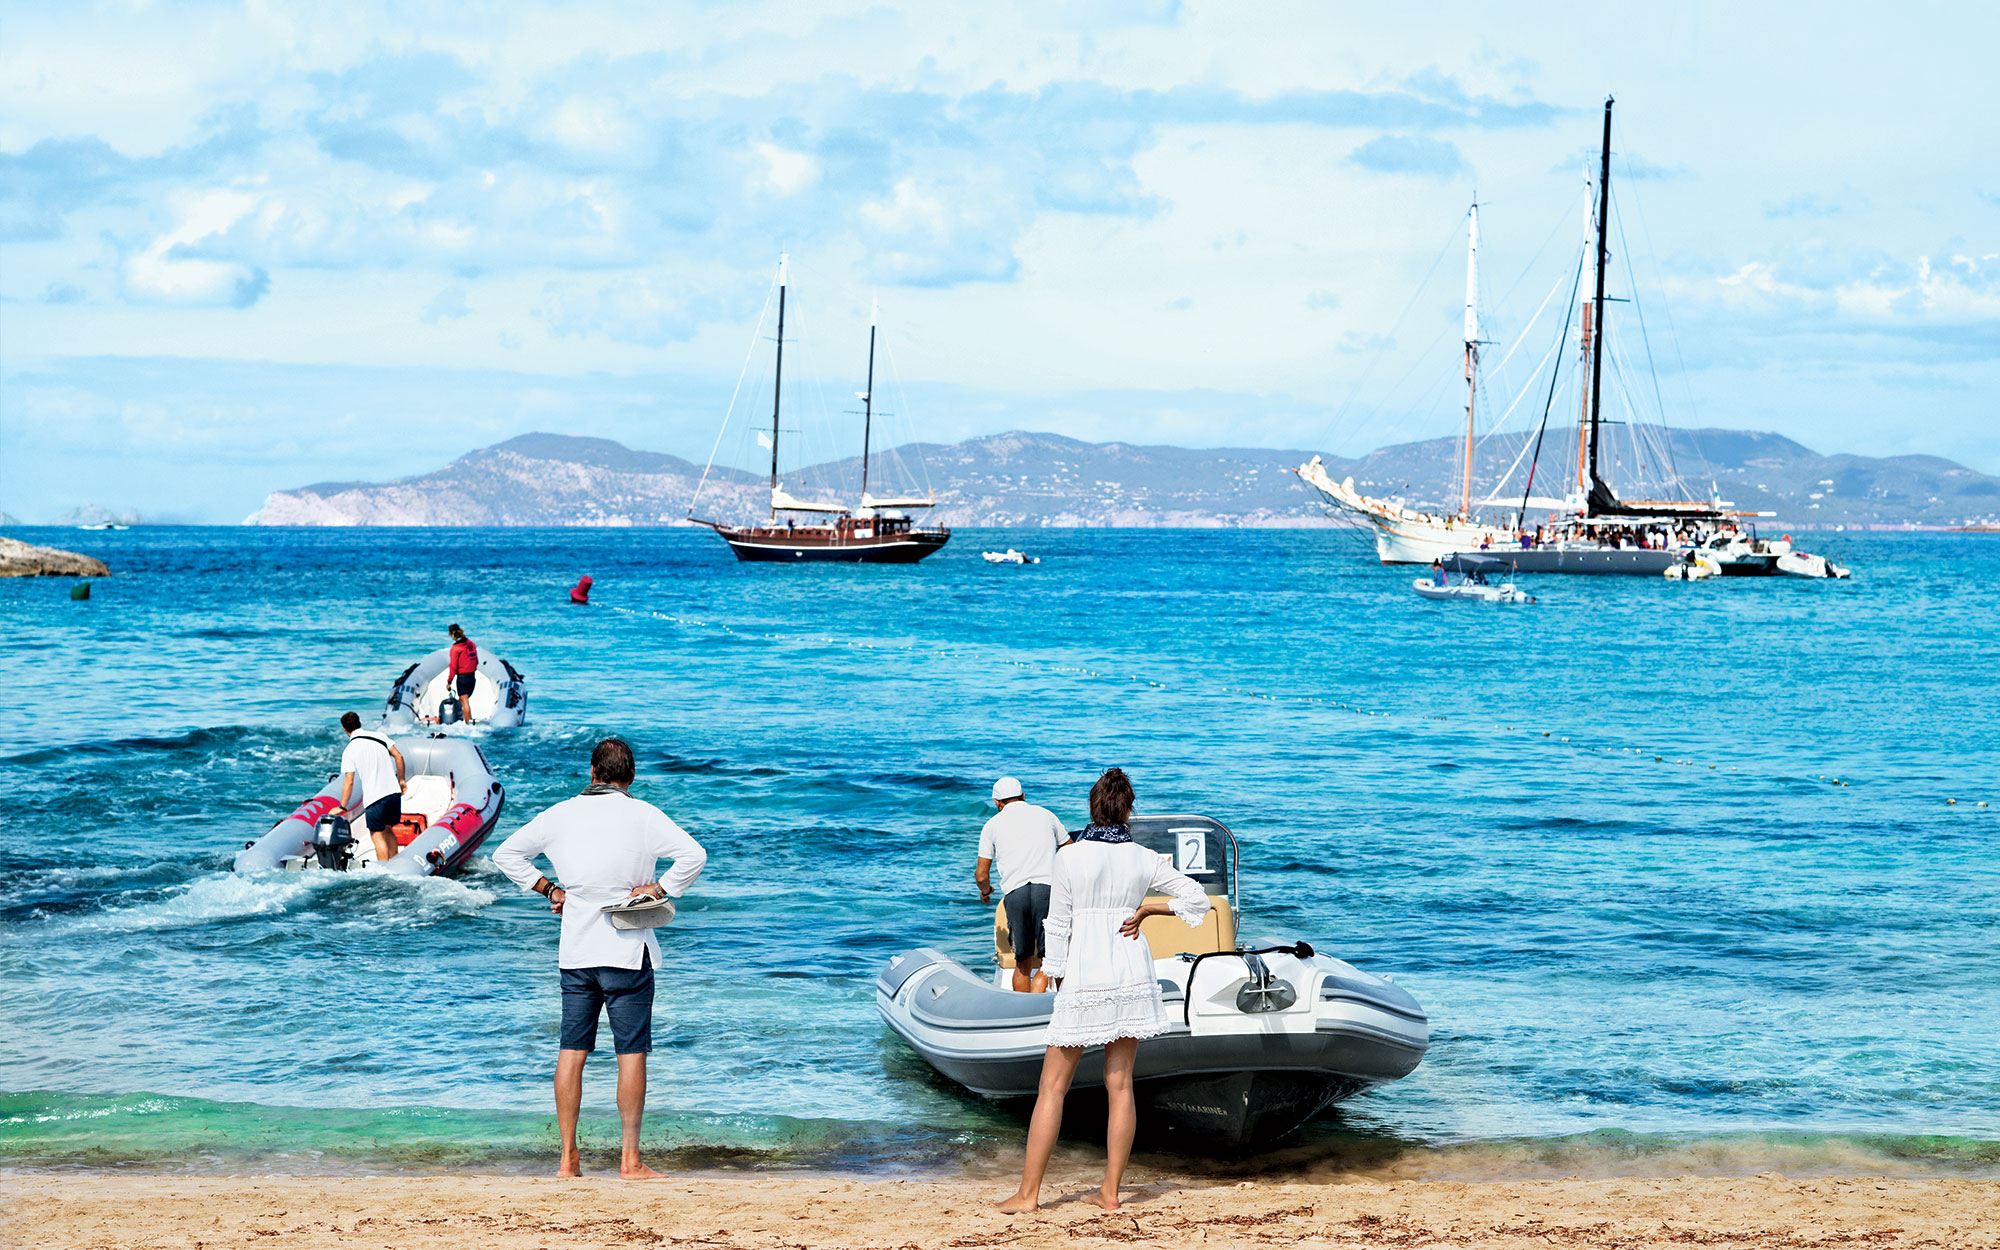 Boats are taking guests from boats to shore (and back) in front of the restaurant Juan y Andrea on Platja IlletesFormentera, Spain09/2015